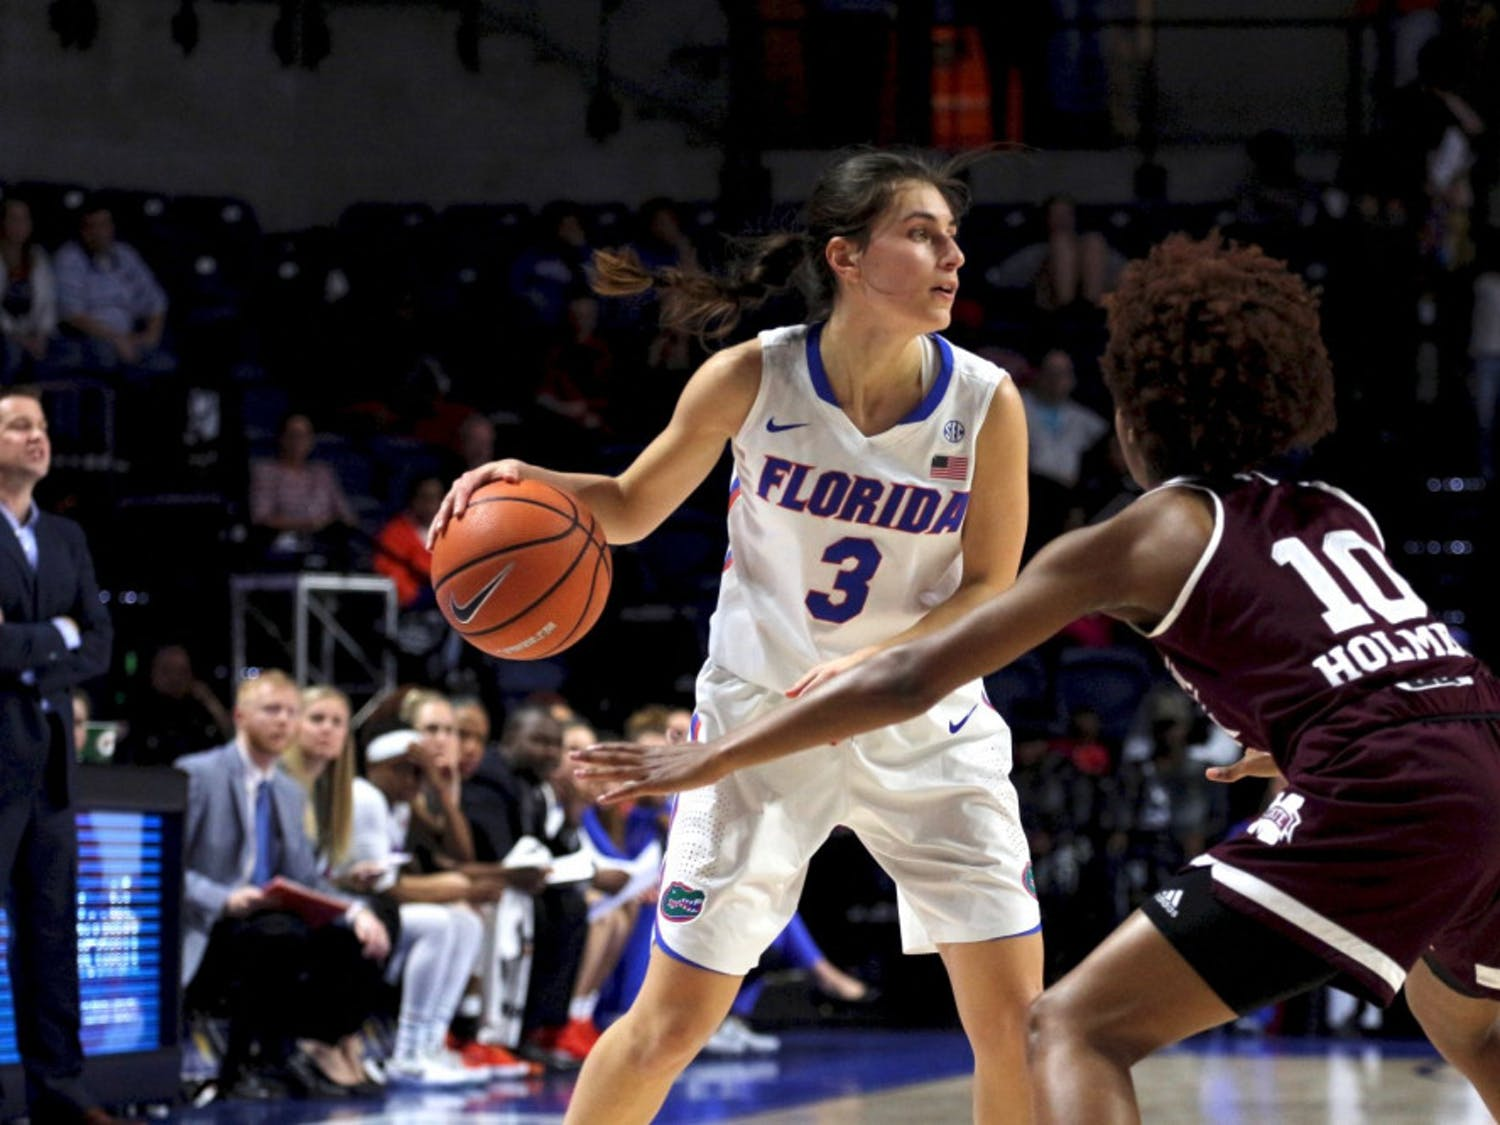 Guard Funda Nakkasoglu led the Gators in scoring with 43 points through the first two games. She's the only UF player shooting over 50.0 percent from the field (57.1).